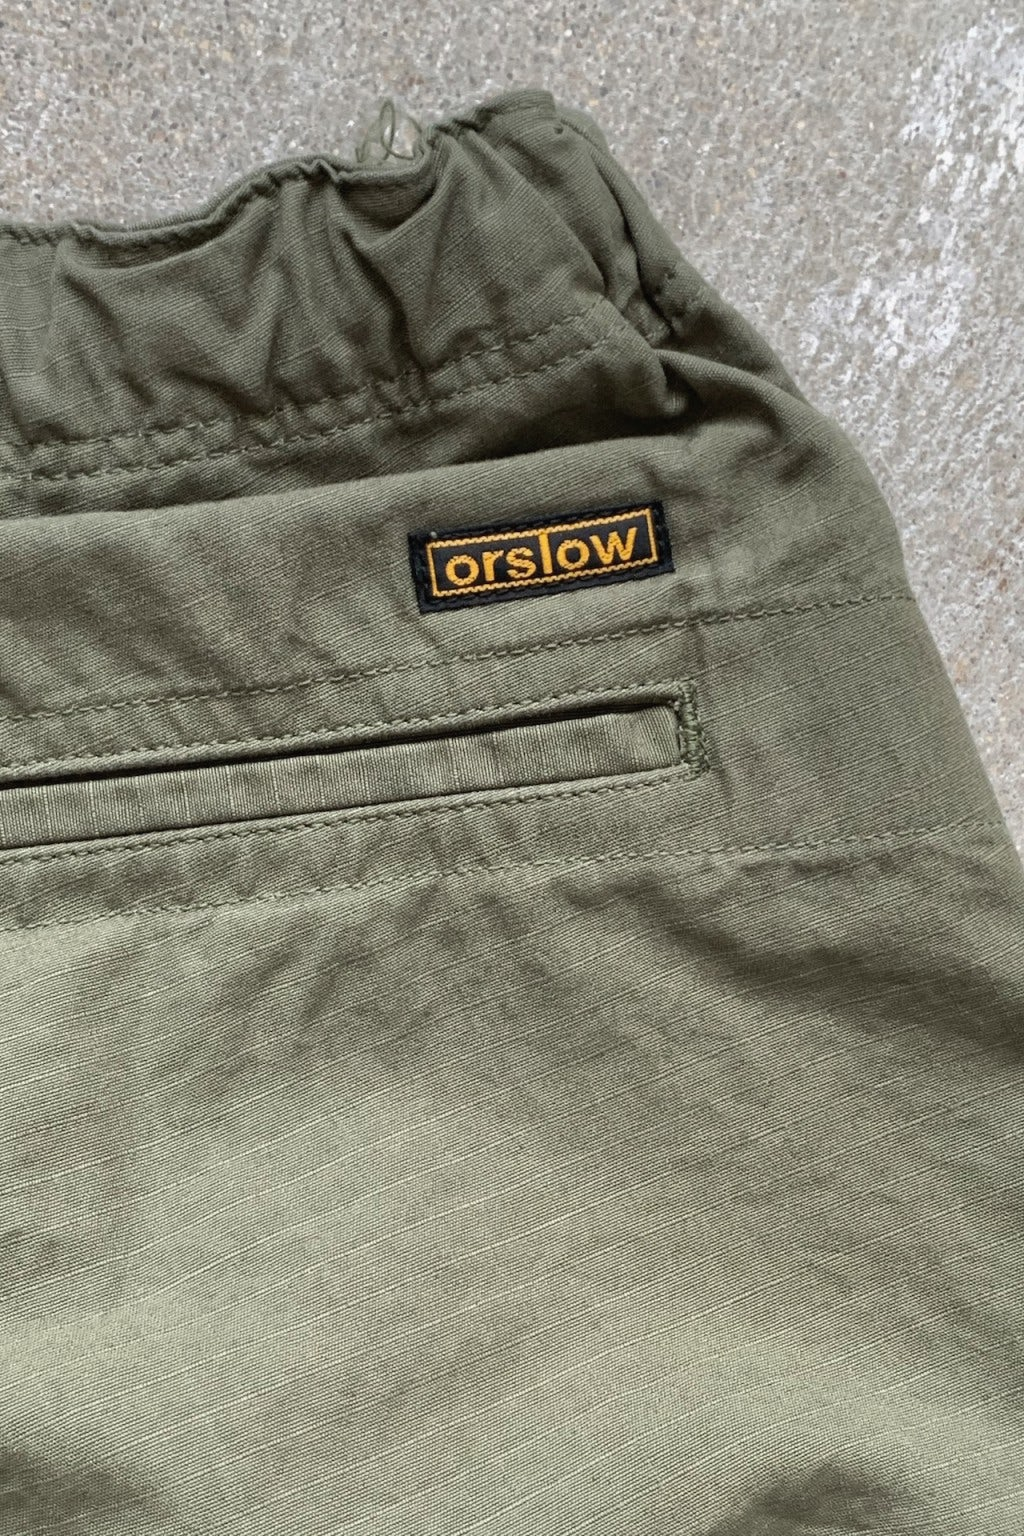 Orslow New Yorker Shorts Green